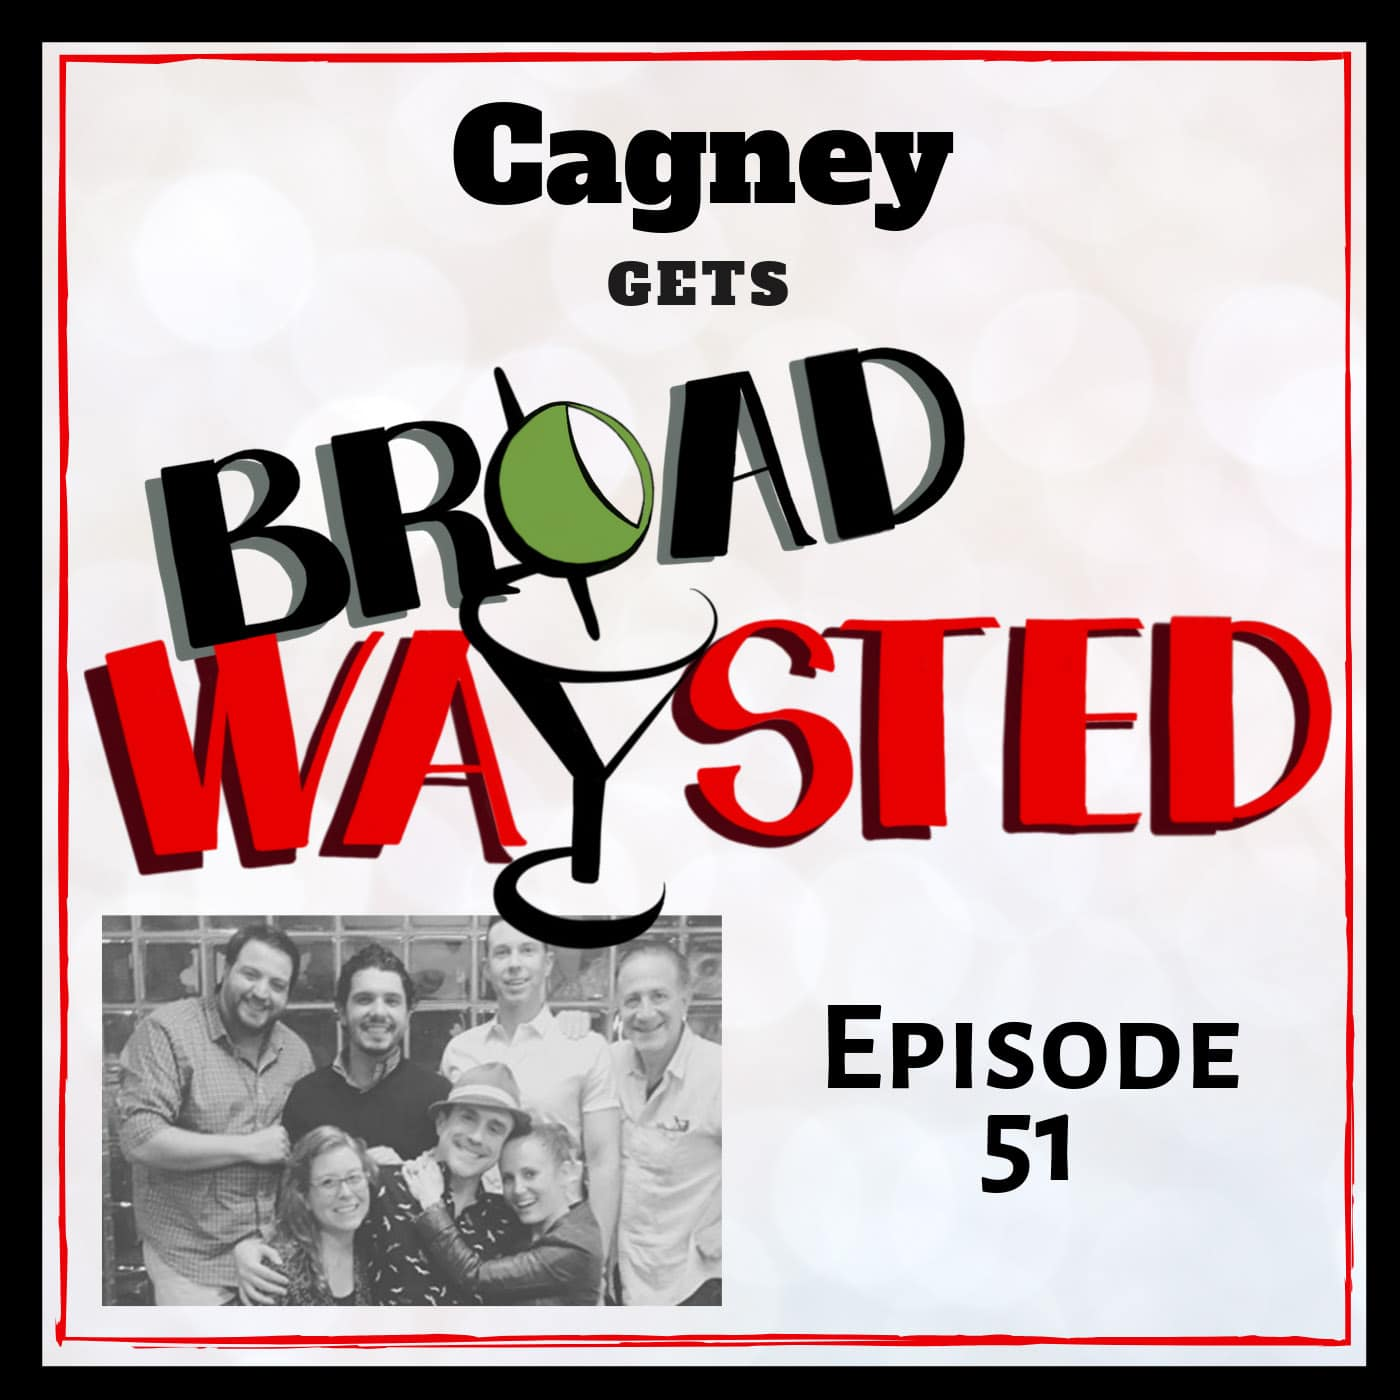 Broadwaysted Ep 51 Cagney